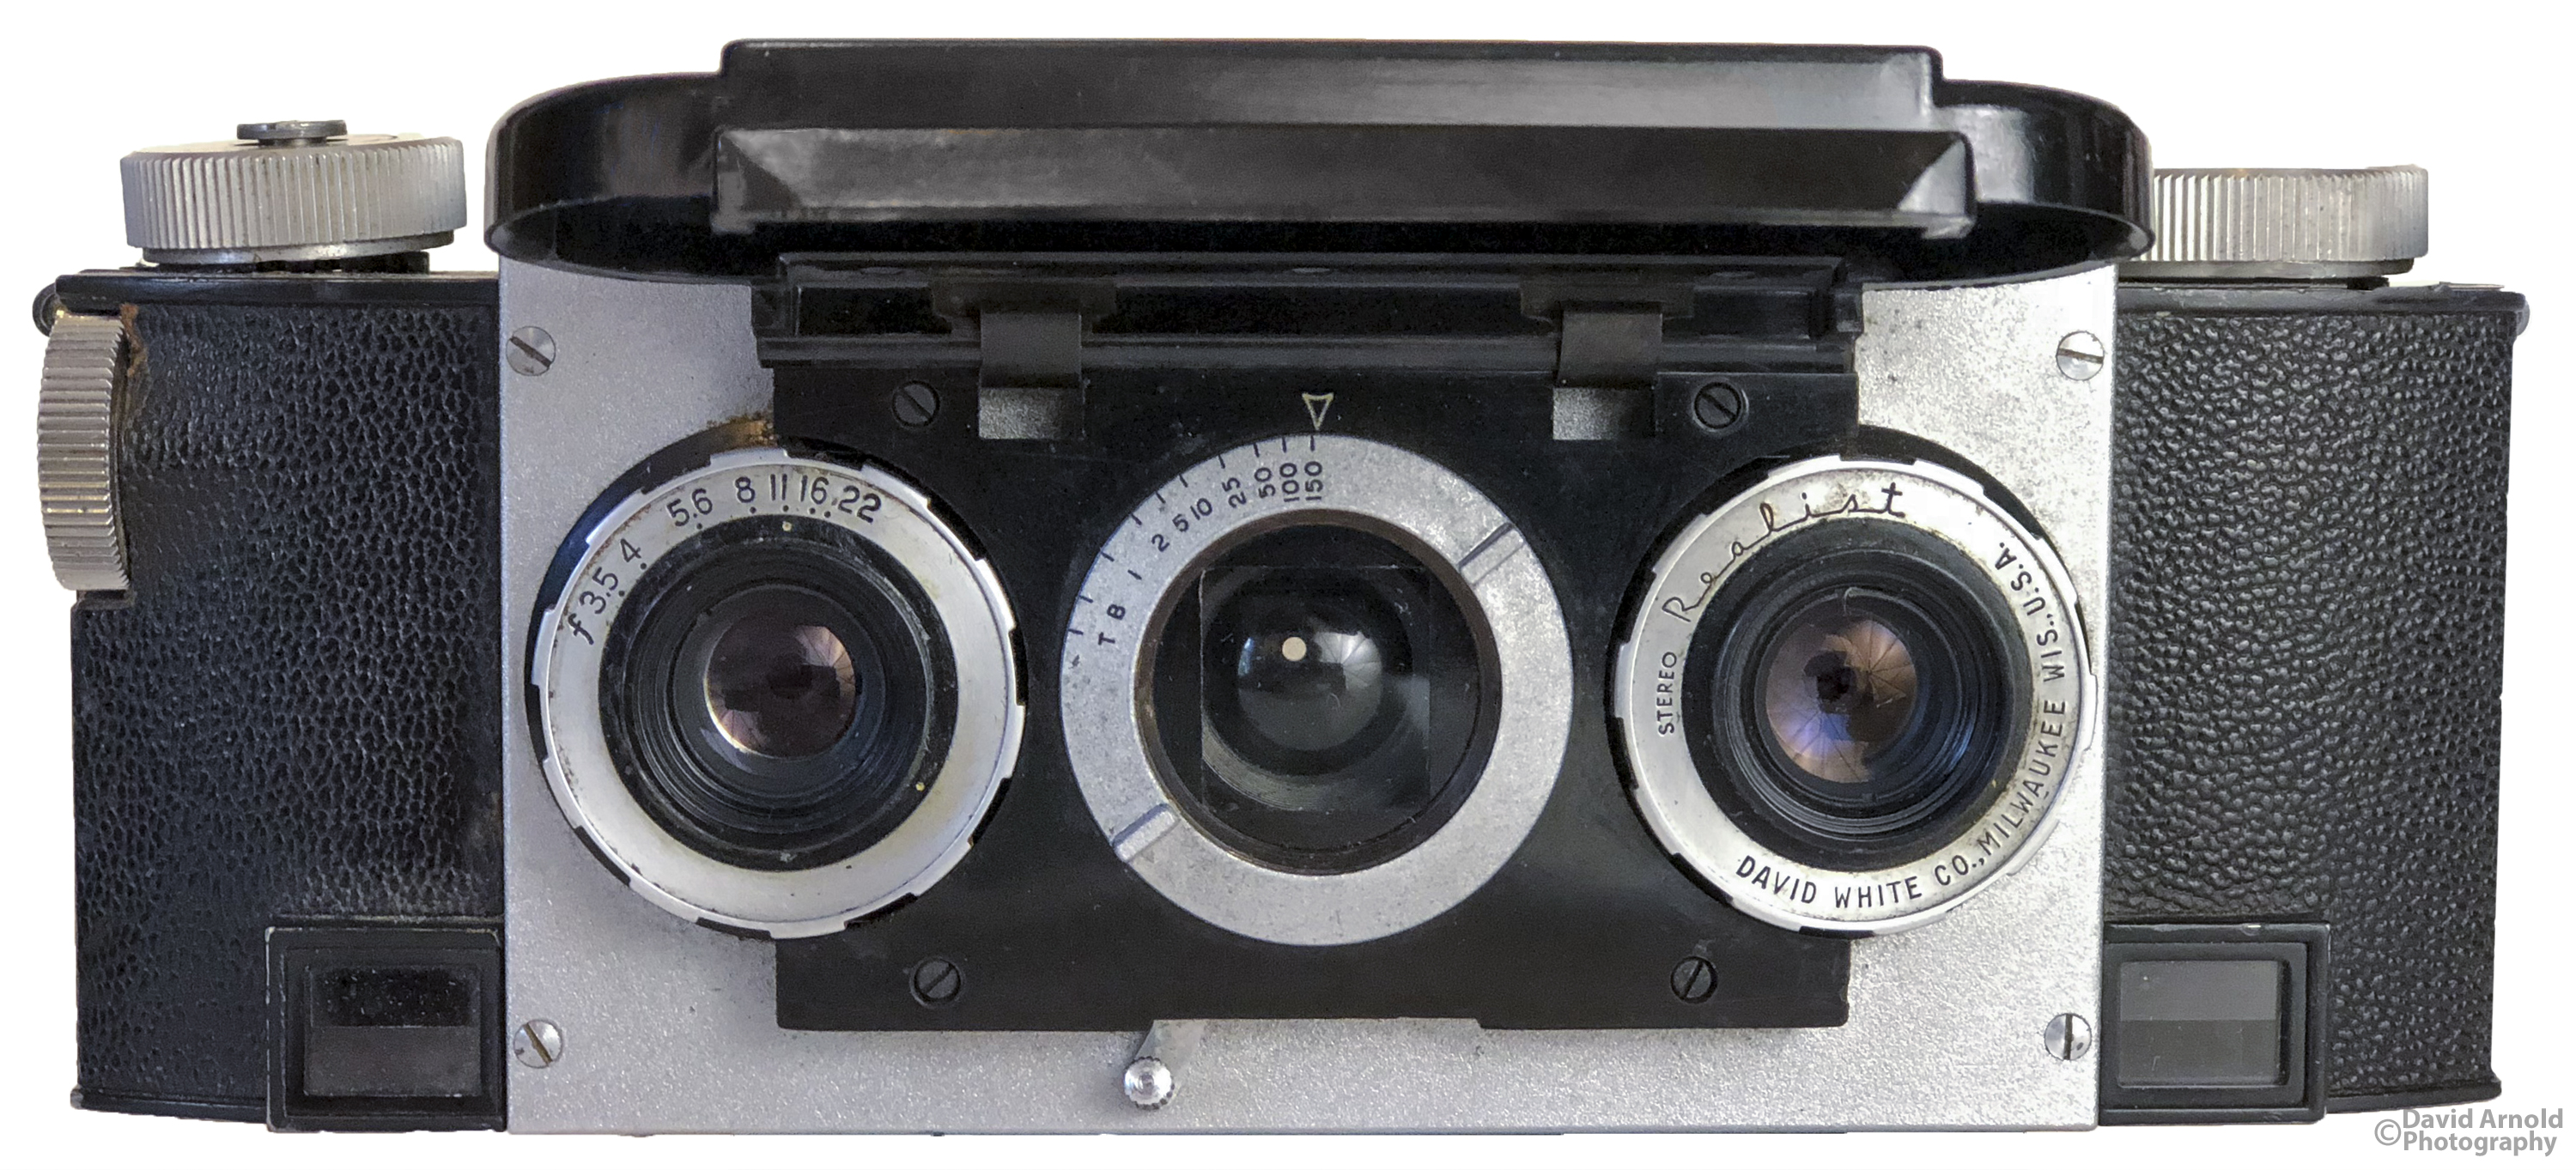 Stereo Realist Front View with Lens Cap Opened